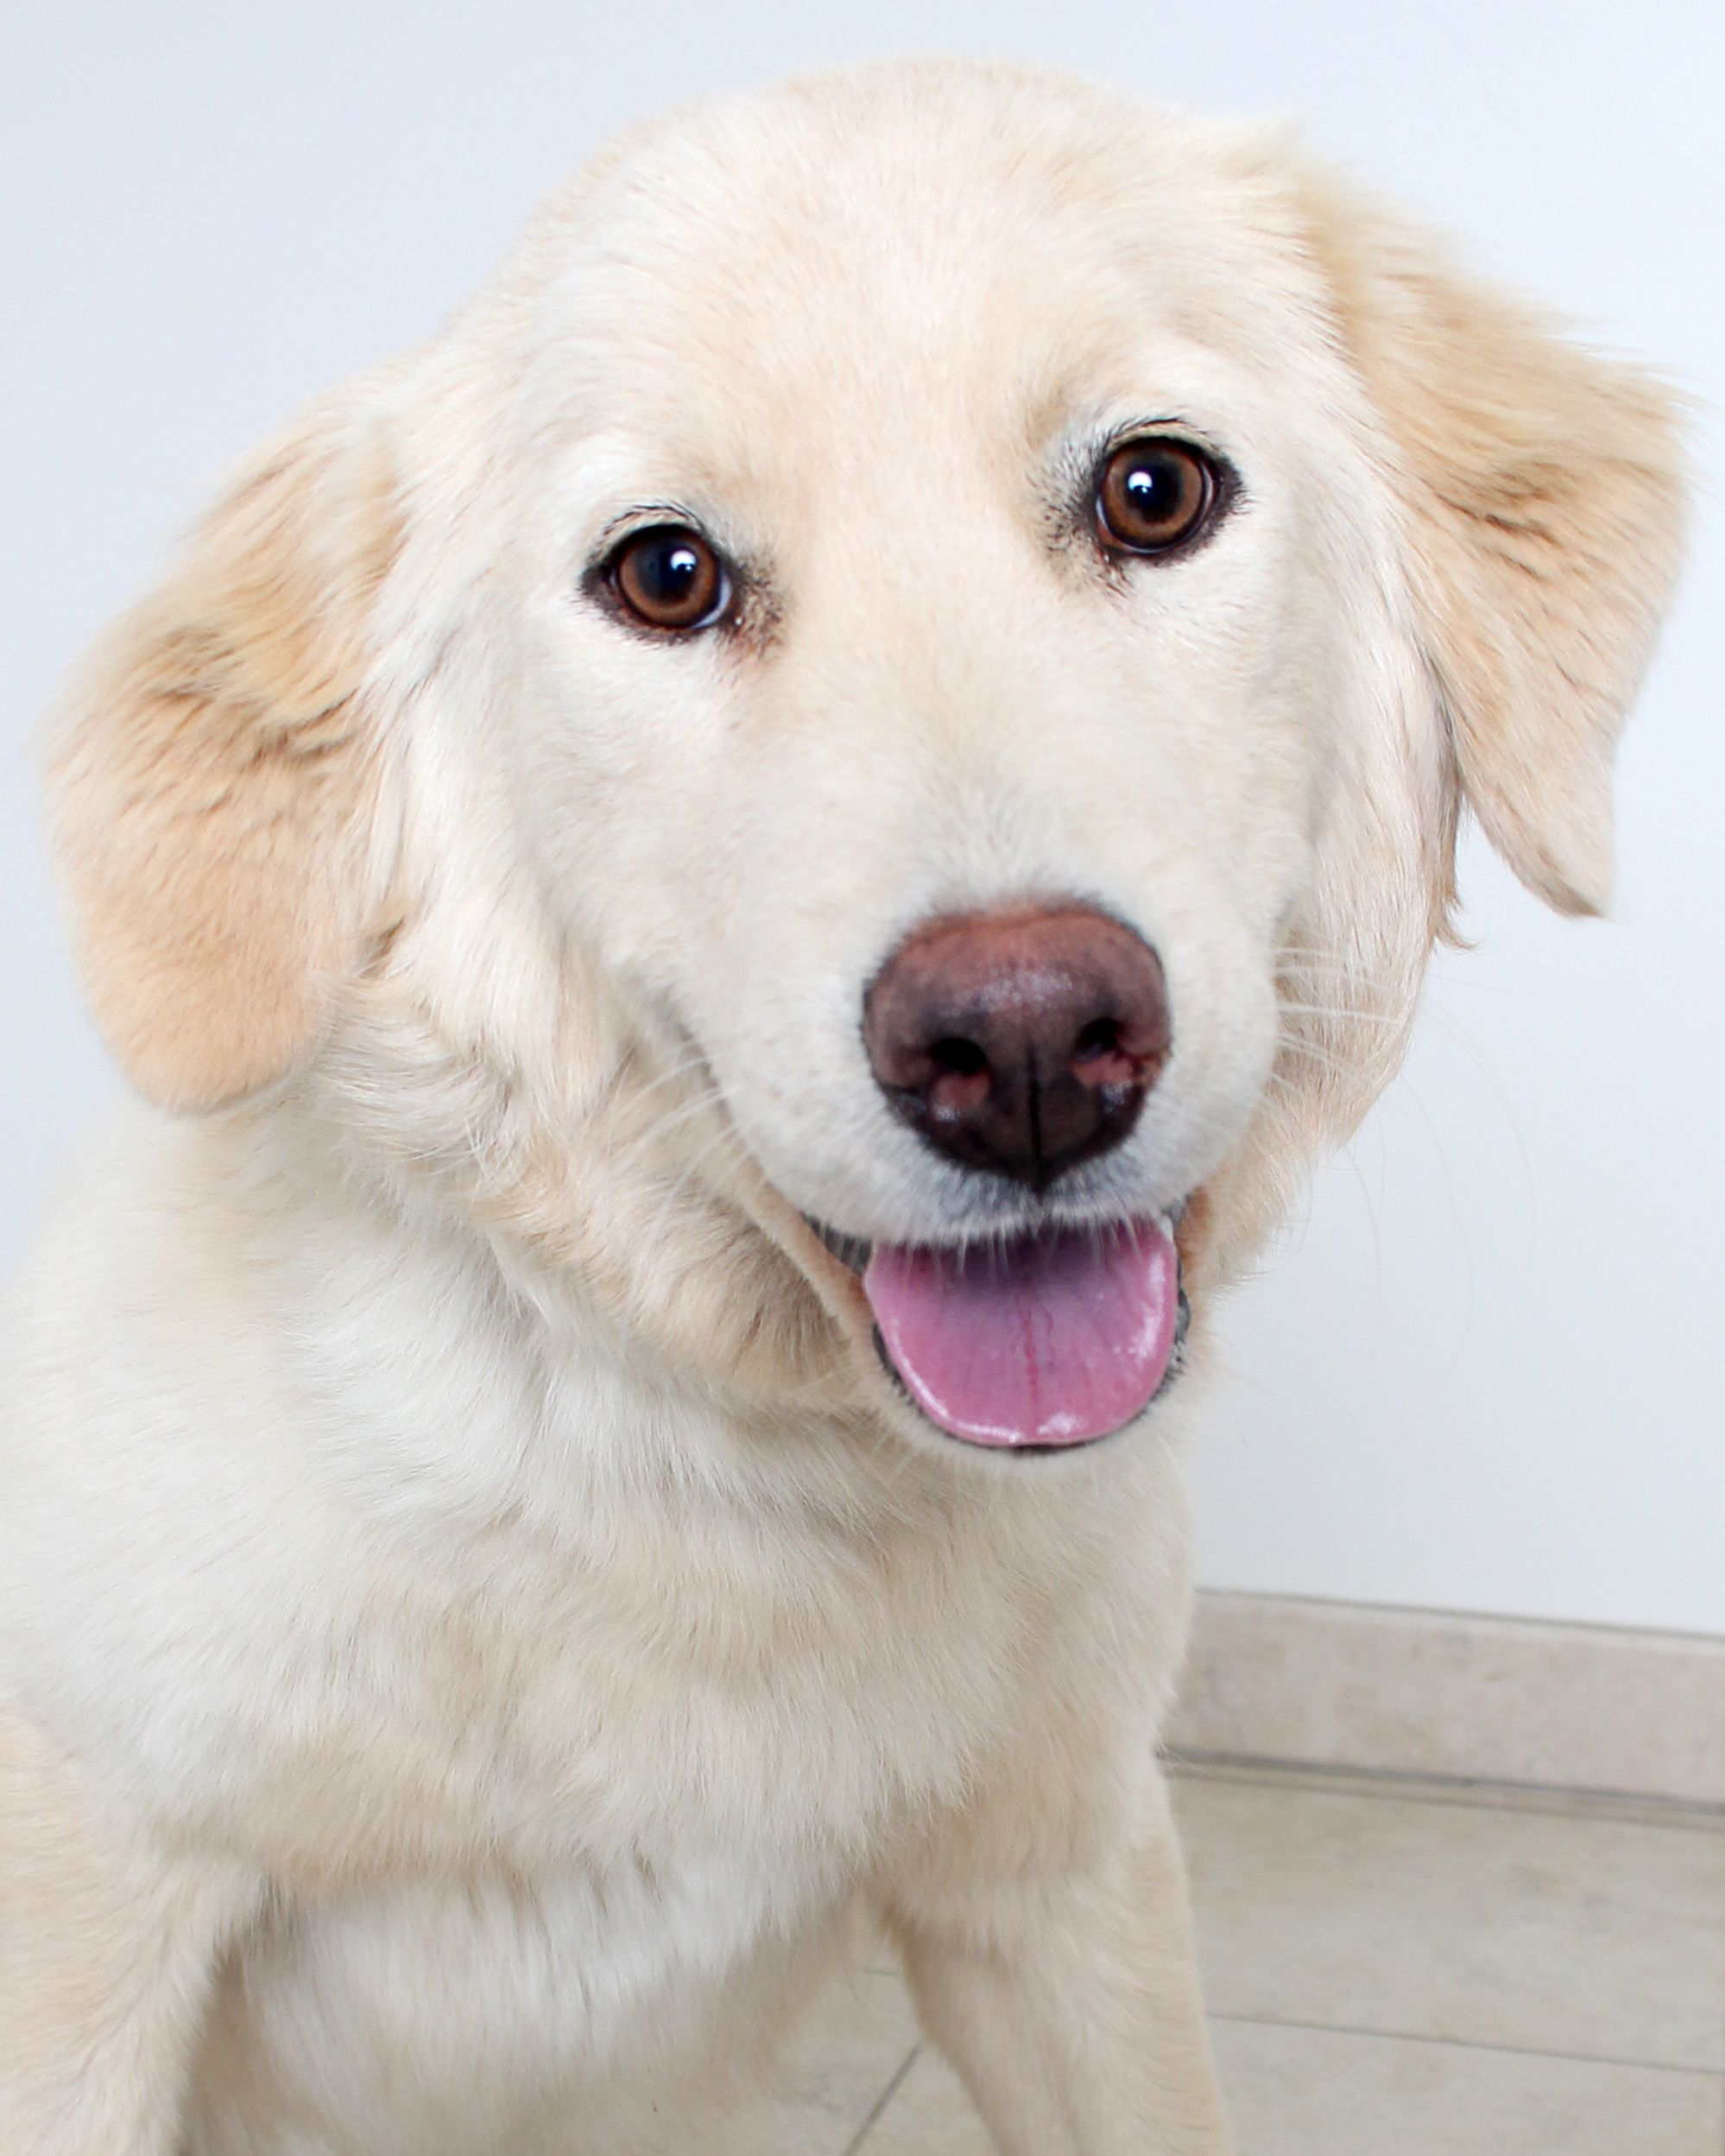 Golden Retriever dog for Adoption in Eden Prairie, MN. ADN